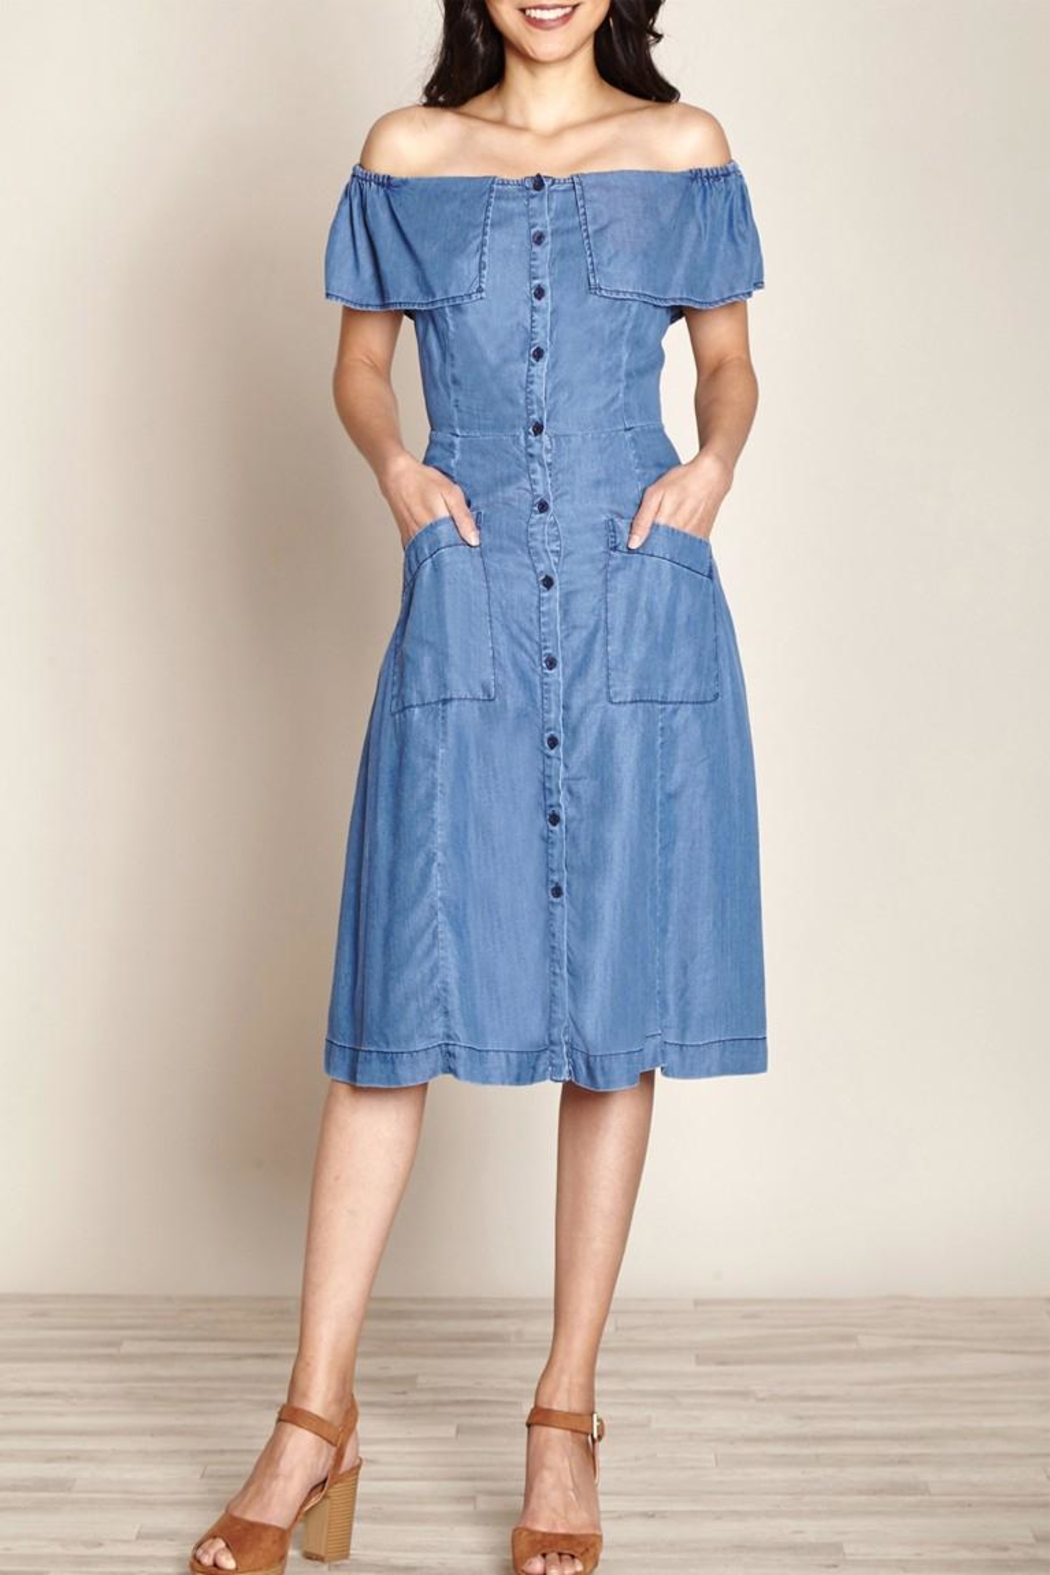 cecd1f23f9 Yumi Chambray Jean Dress from Canada by Didi s Boutique — Shoptiques